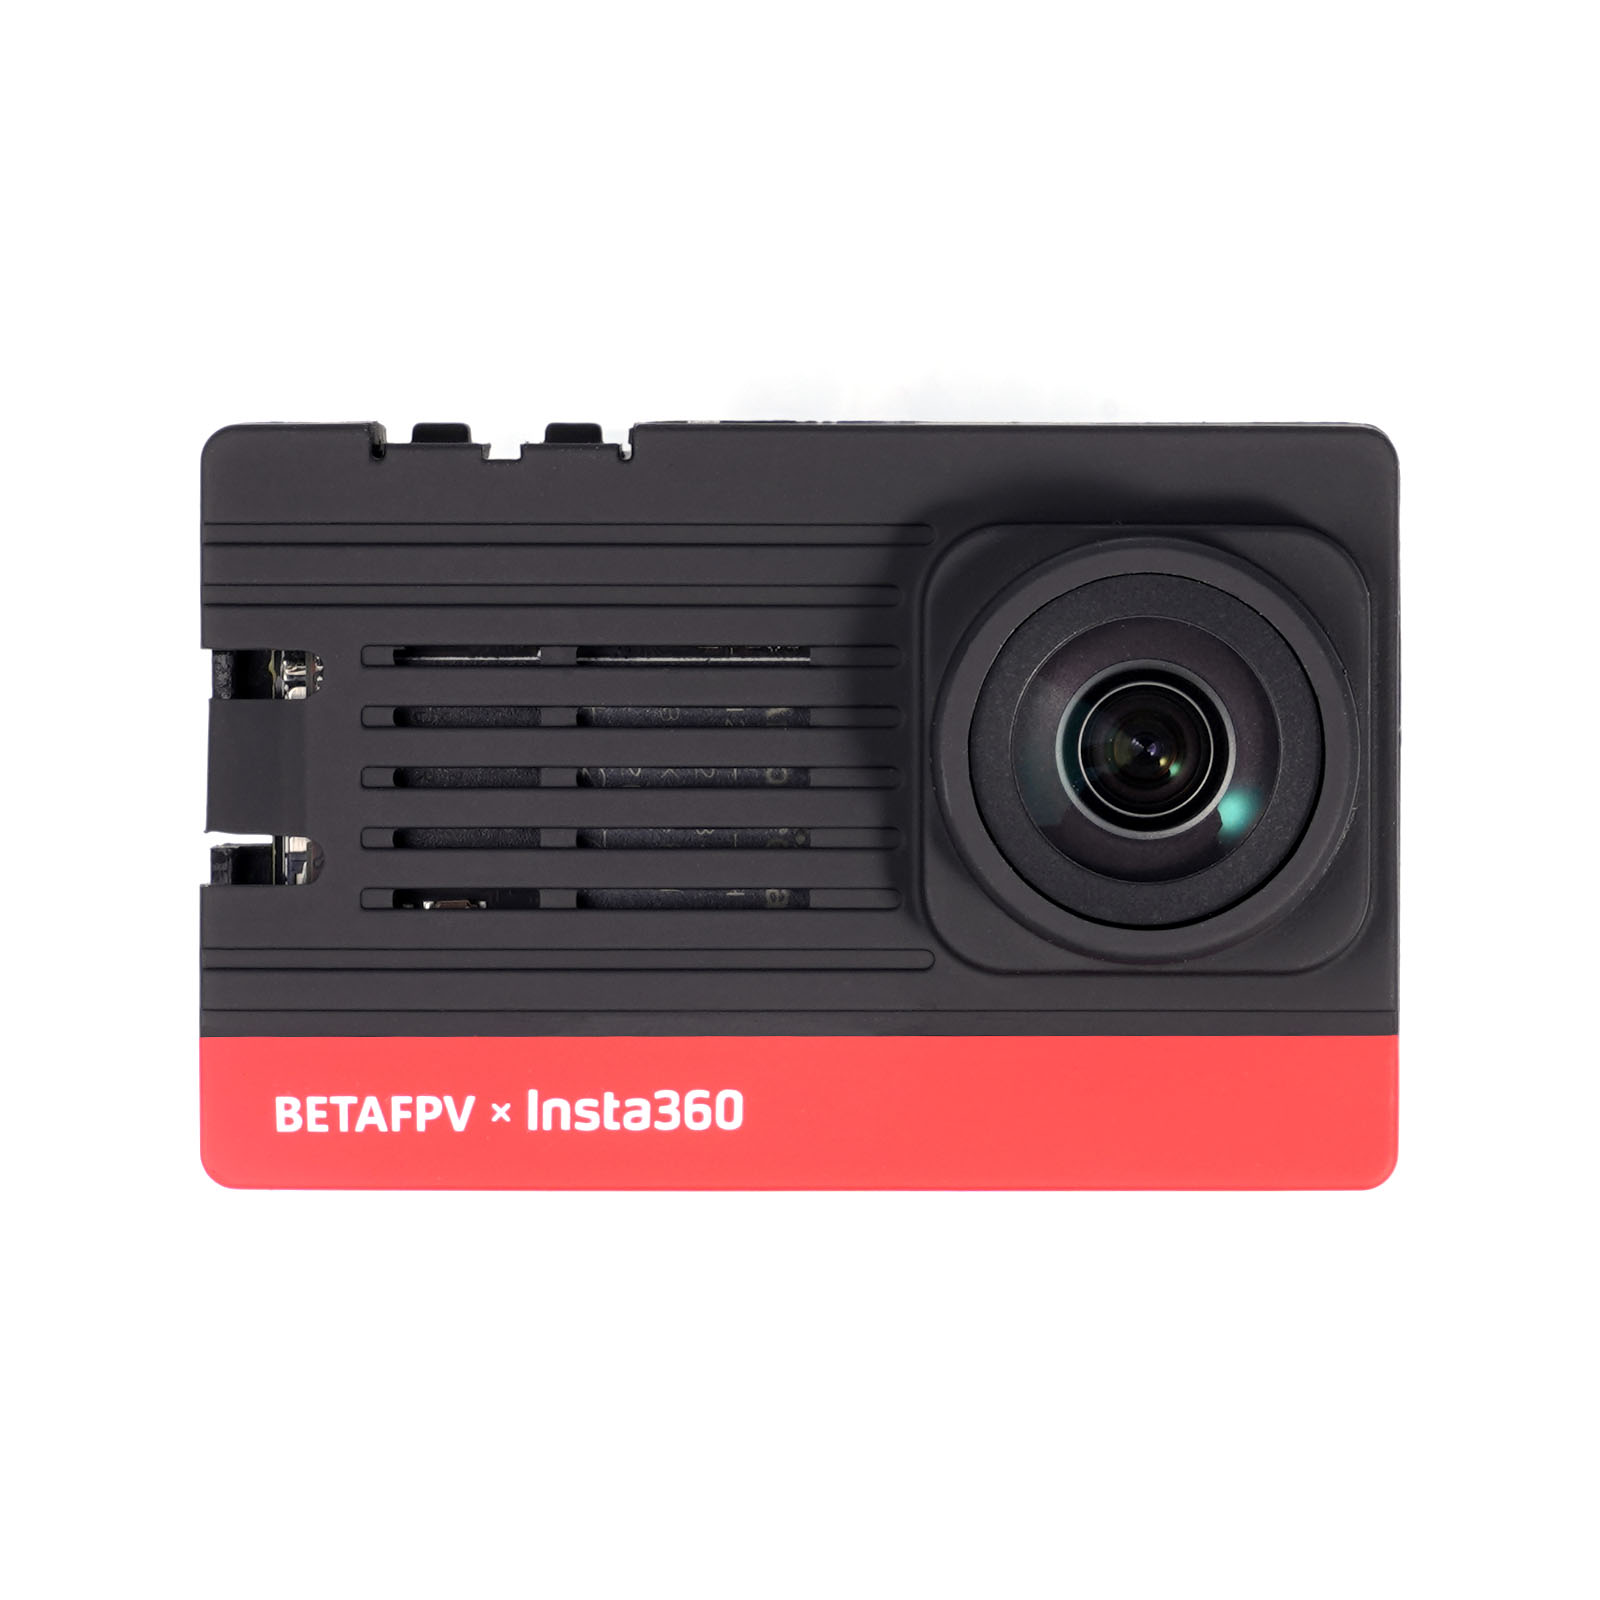 SMO 4K Ultralight Action Camera (BetaFPV / Insta360)